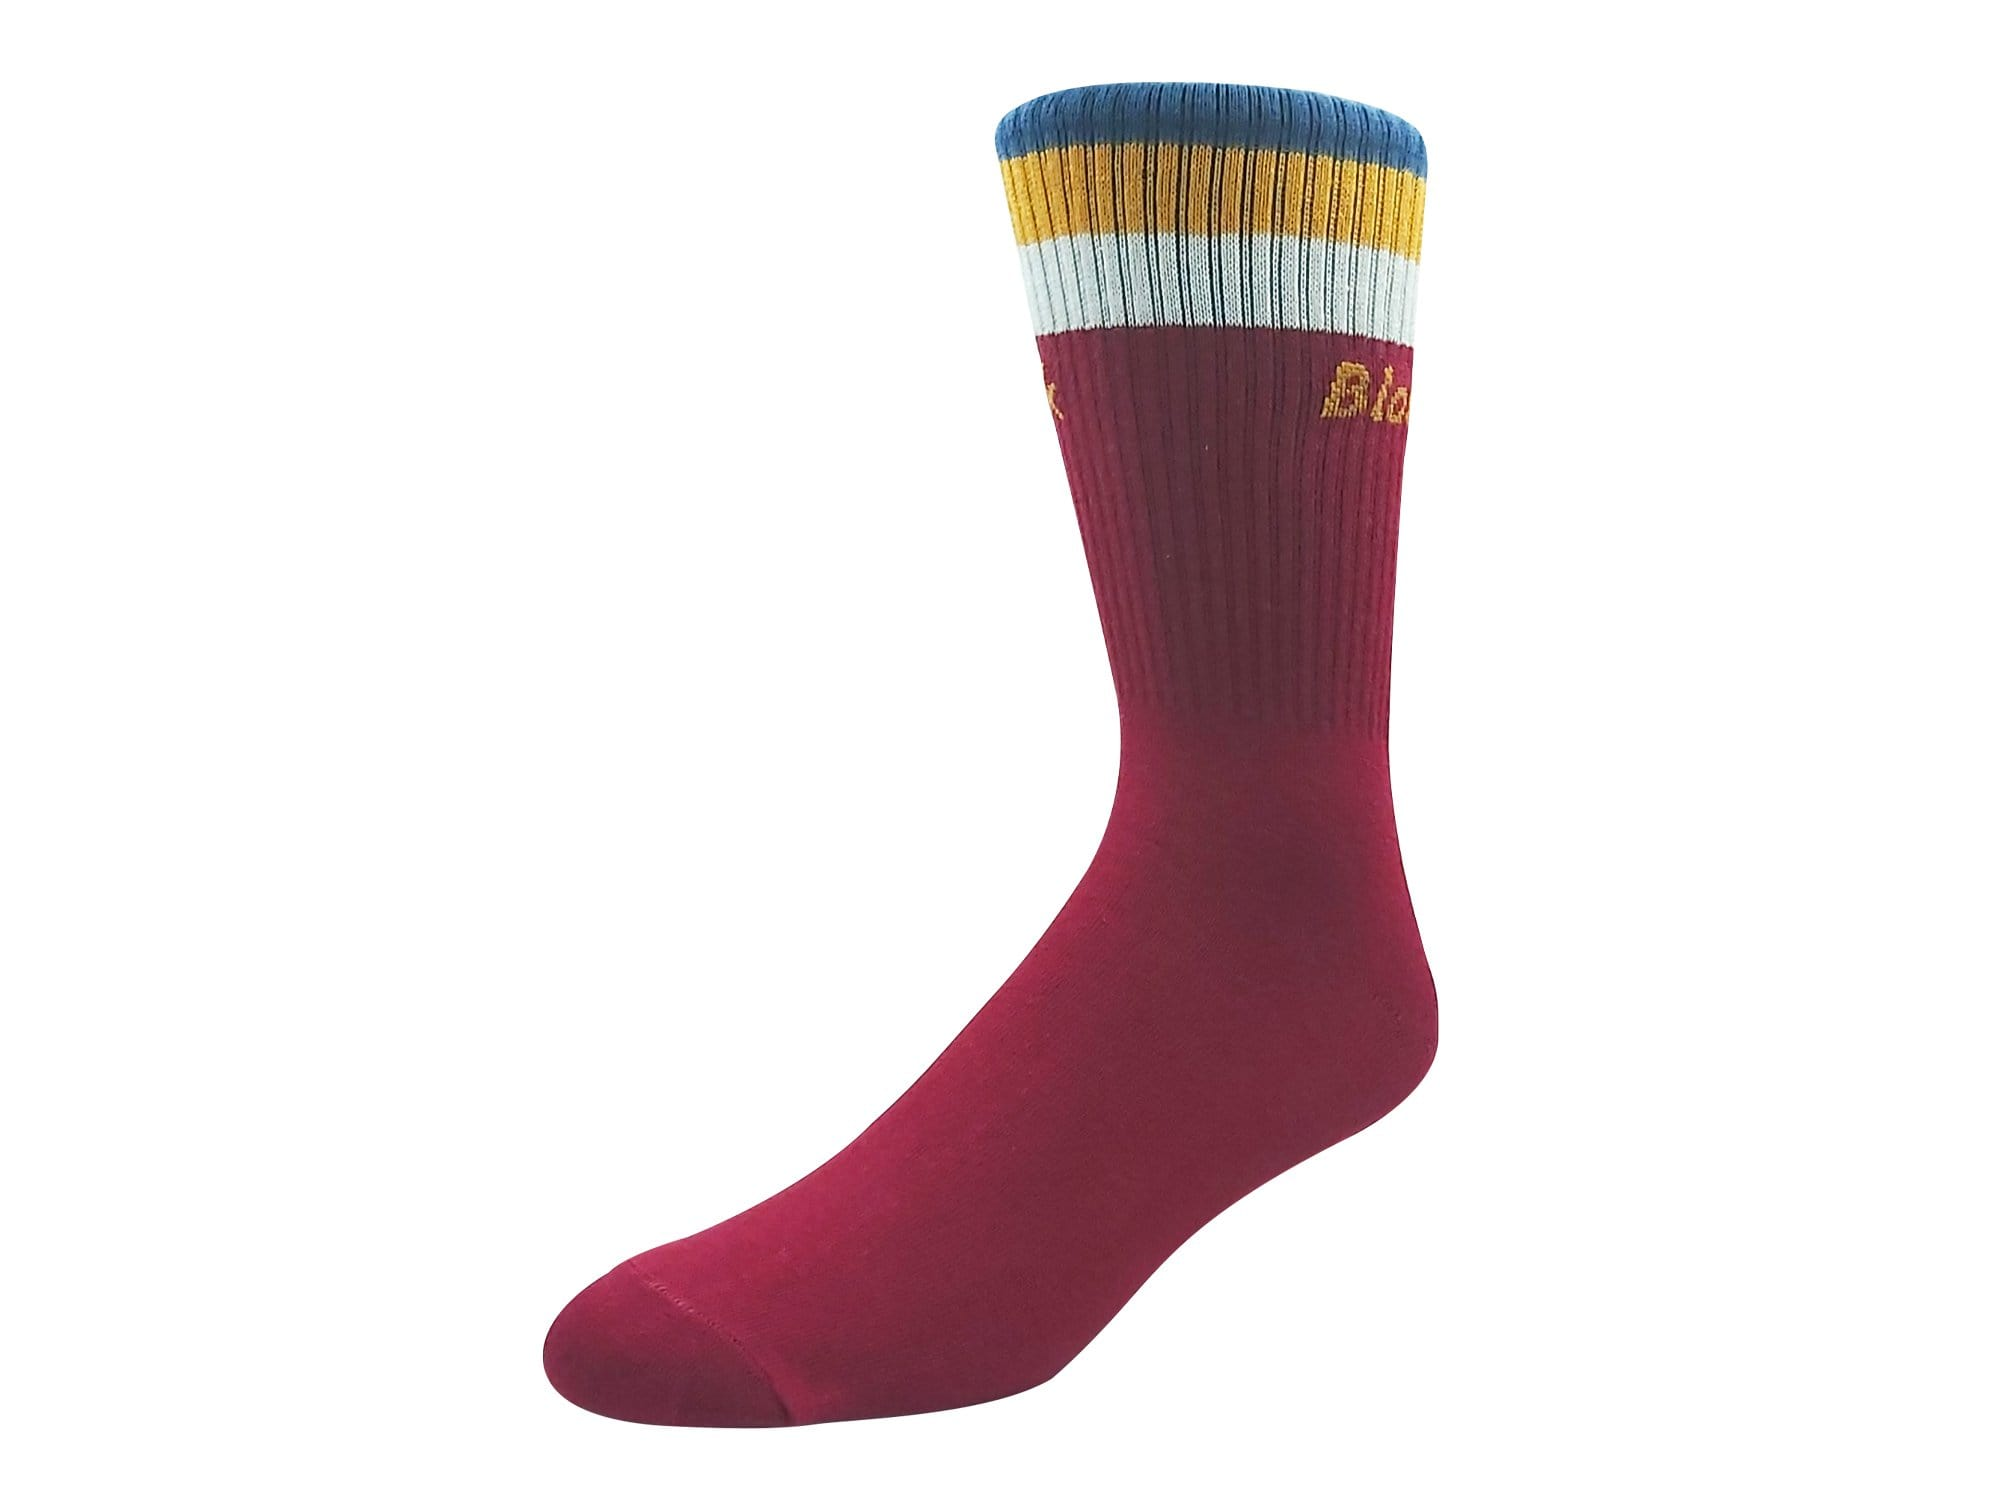 Calcetines Block Socks Pack 3 Bla/Gri/Ros Mujer Multicolor